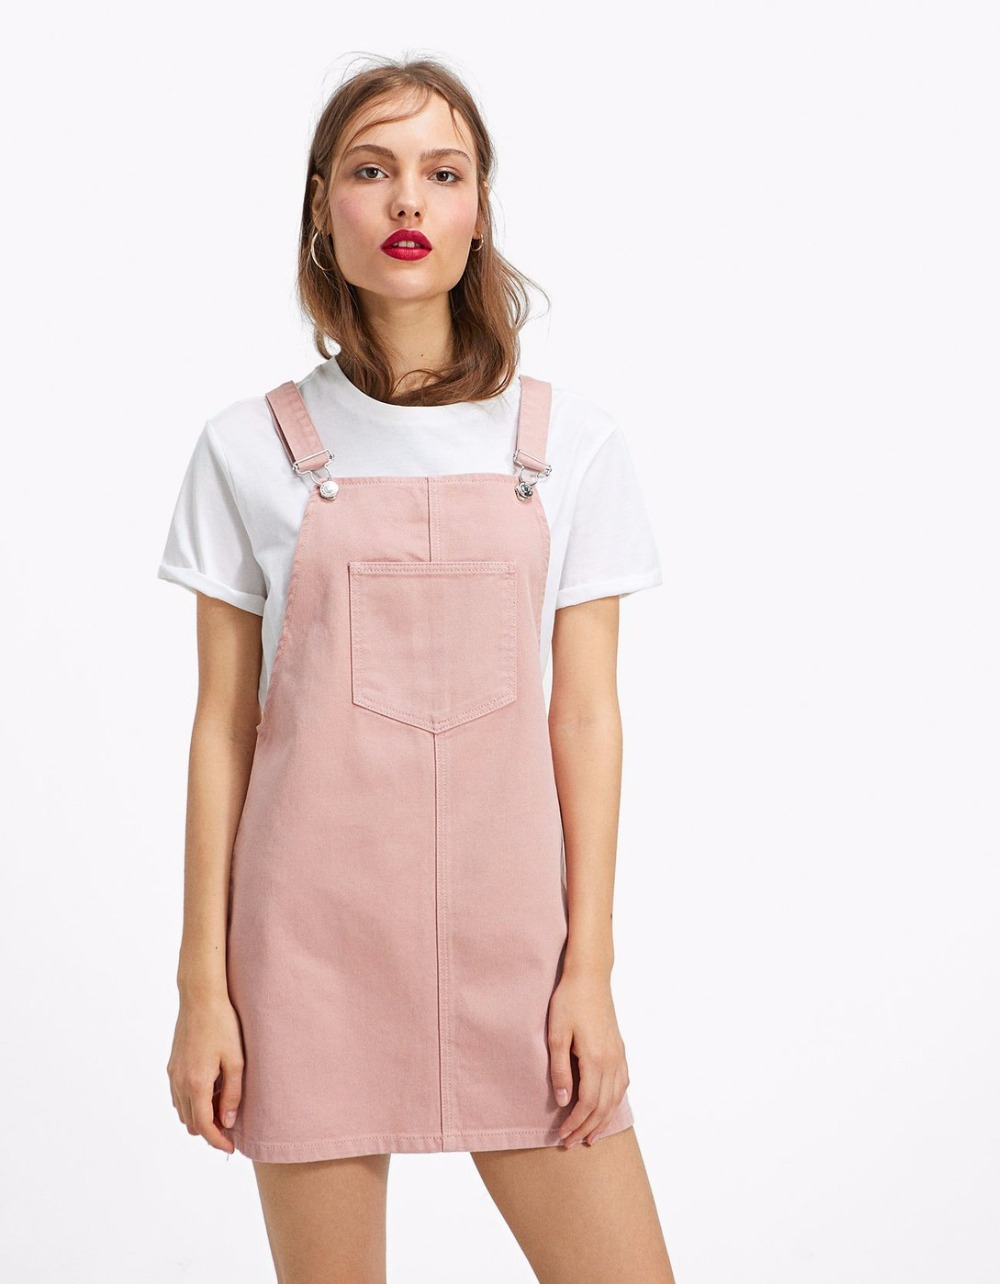 JoinYouth Womens Fashion White Pink Black Pocket Decoration Denim Adjustable Suspender Skirt Ladys Belt Jumpsuit Braces Skirt